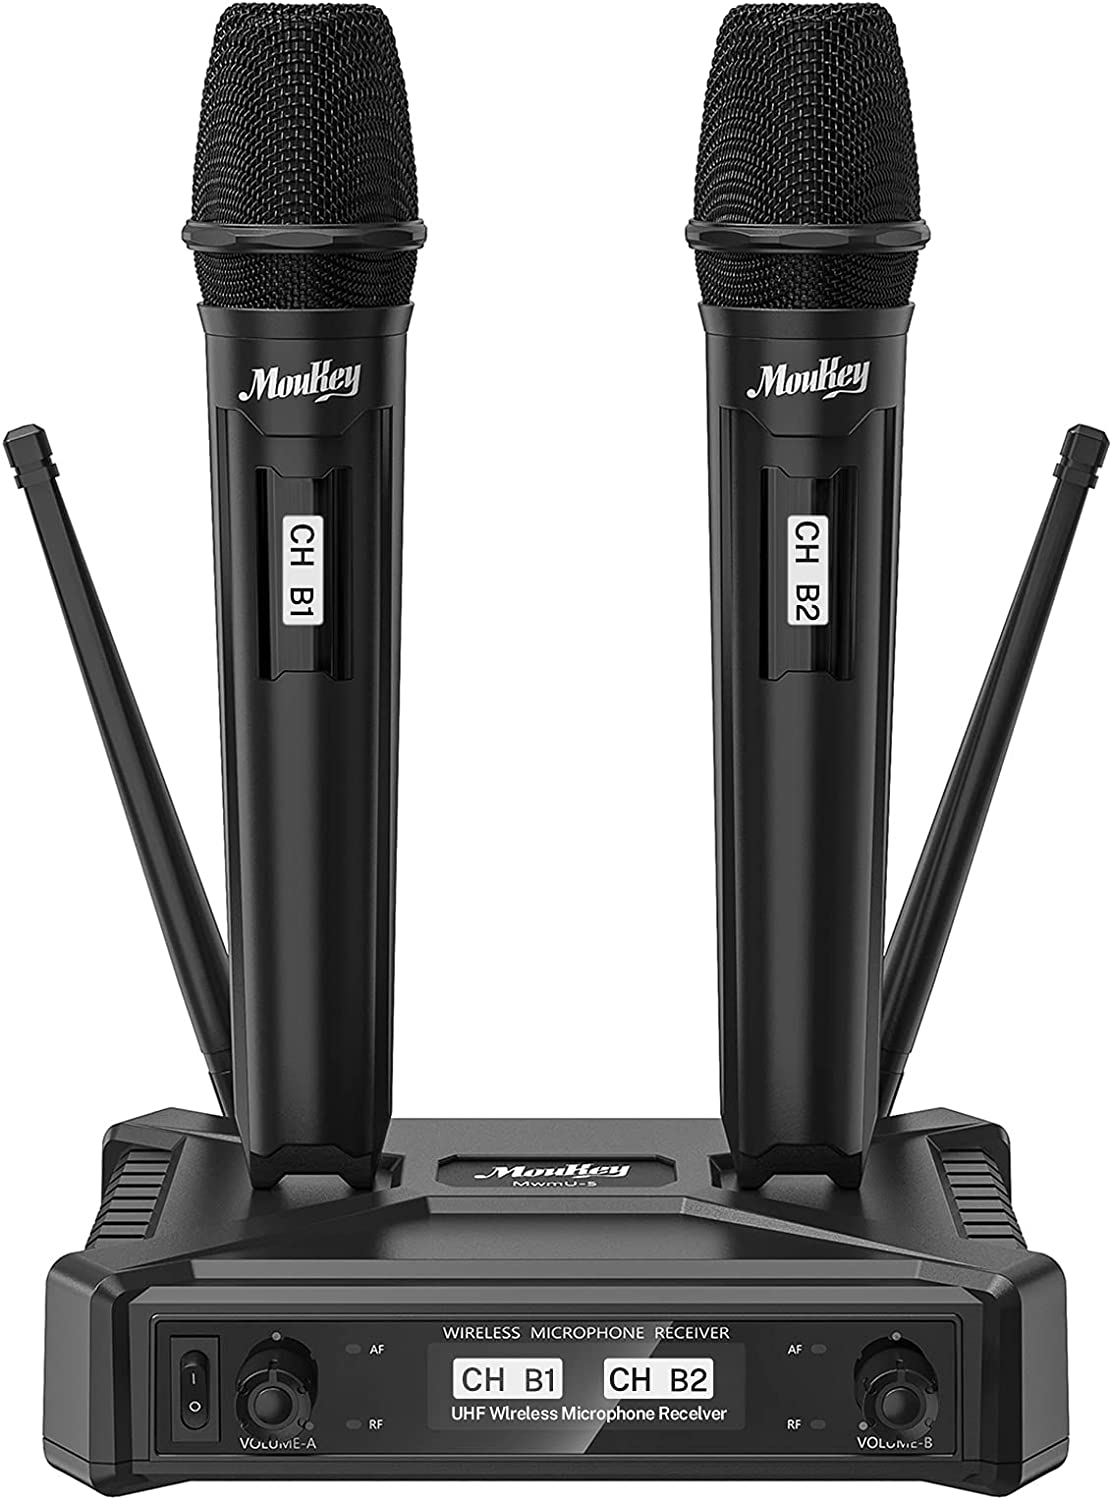 Moukey Wireless Microphones System, Dual UHF Dynamic Microphone Handheld Wireless Mic System with 295ft Range for Home Karaoke, Meeting, Party, Church, Wedding, Meeting, Party, Church, KTV